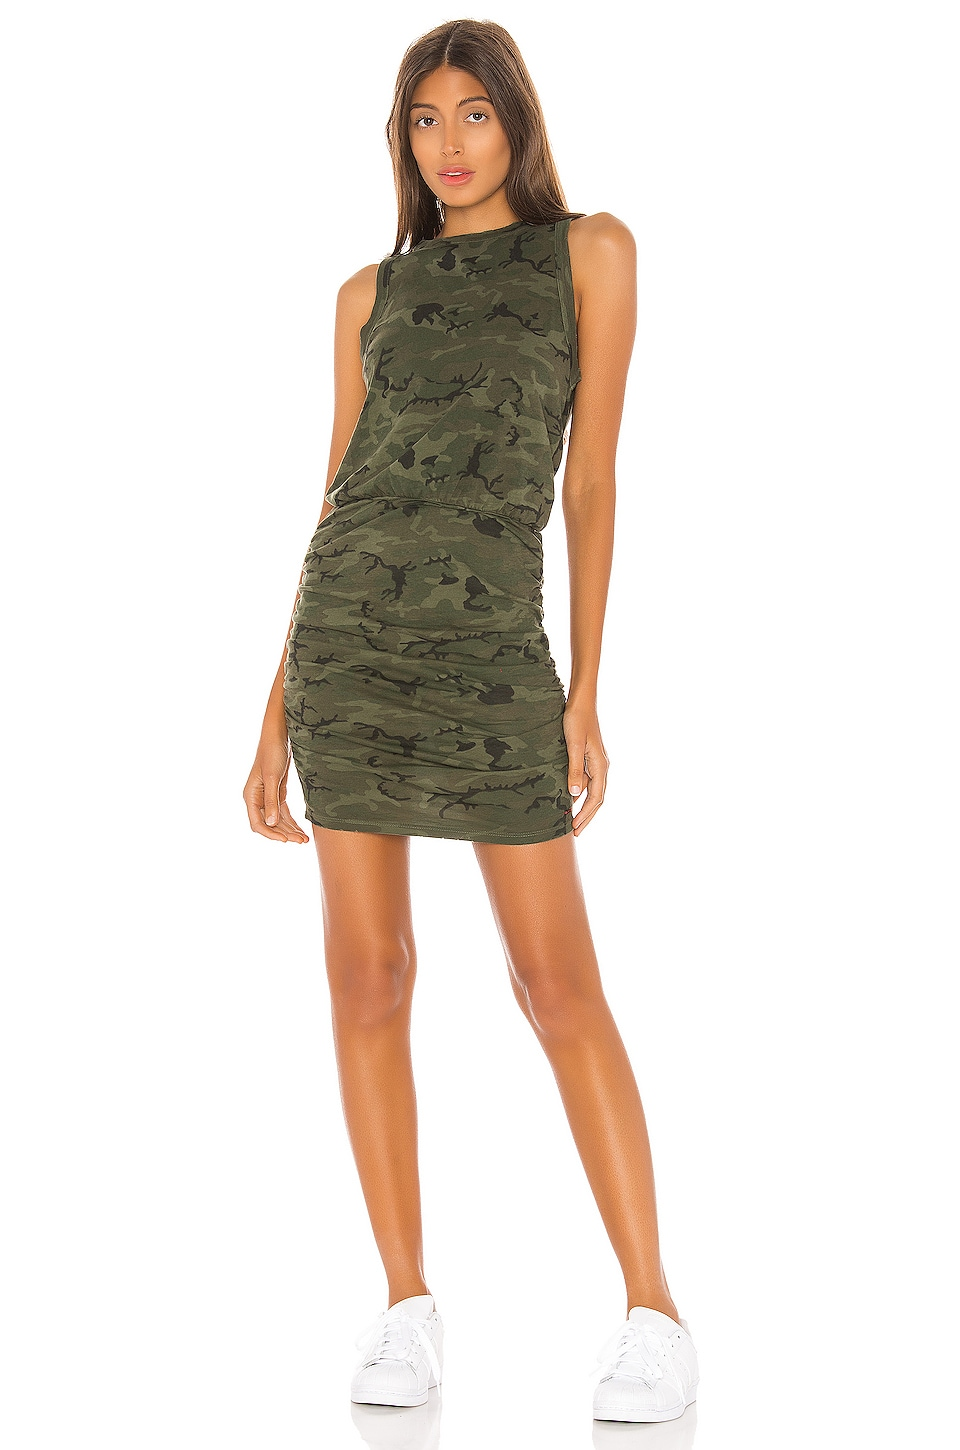 n:philanthropy Majorica Mini Dress in Moss Multi Camo